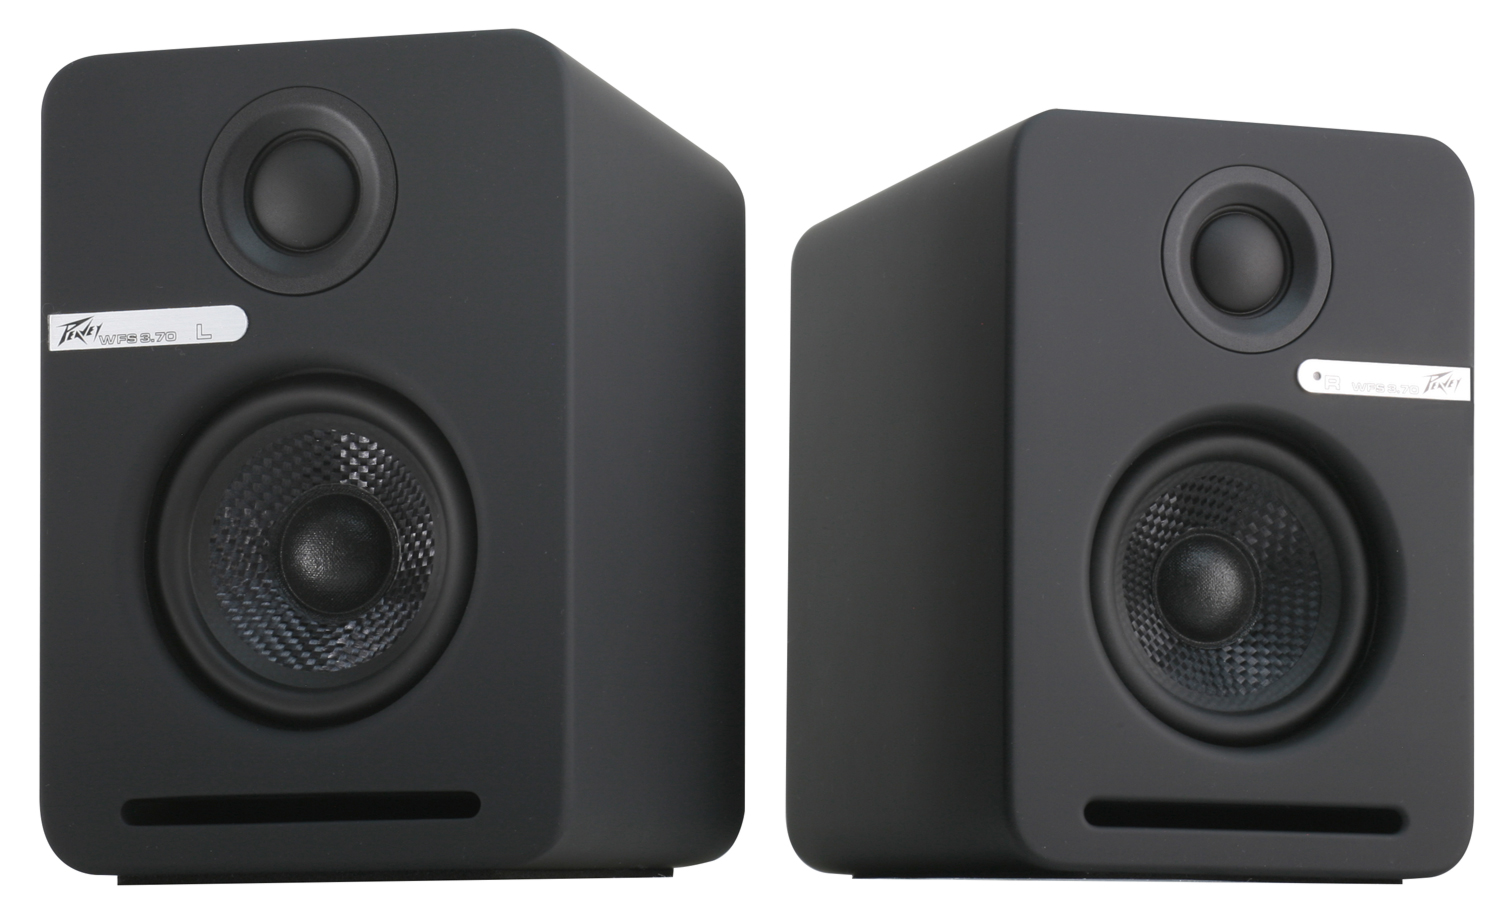 peavey-wfs-3-70-airplay-powered-speakers.jpg